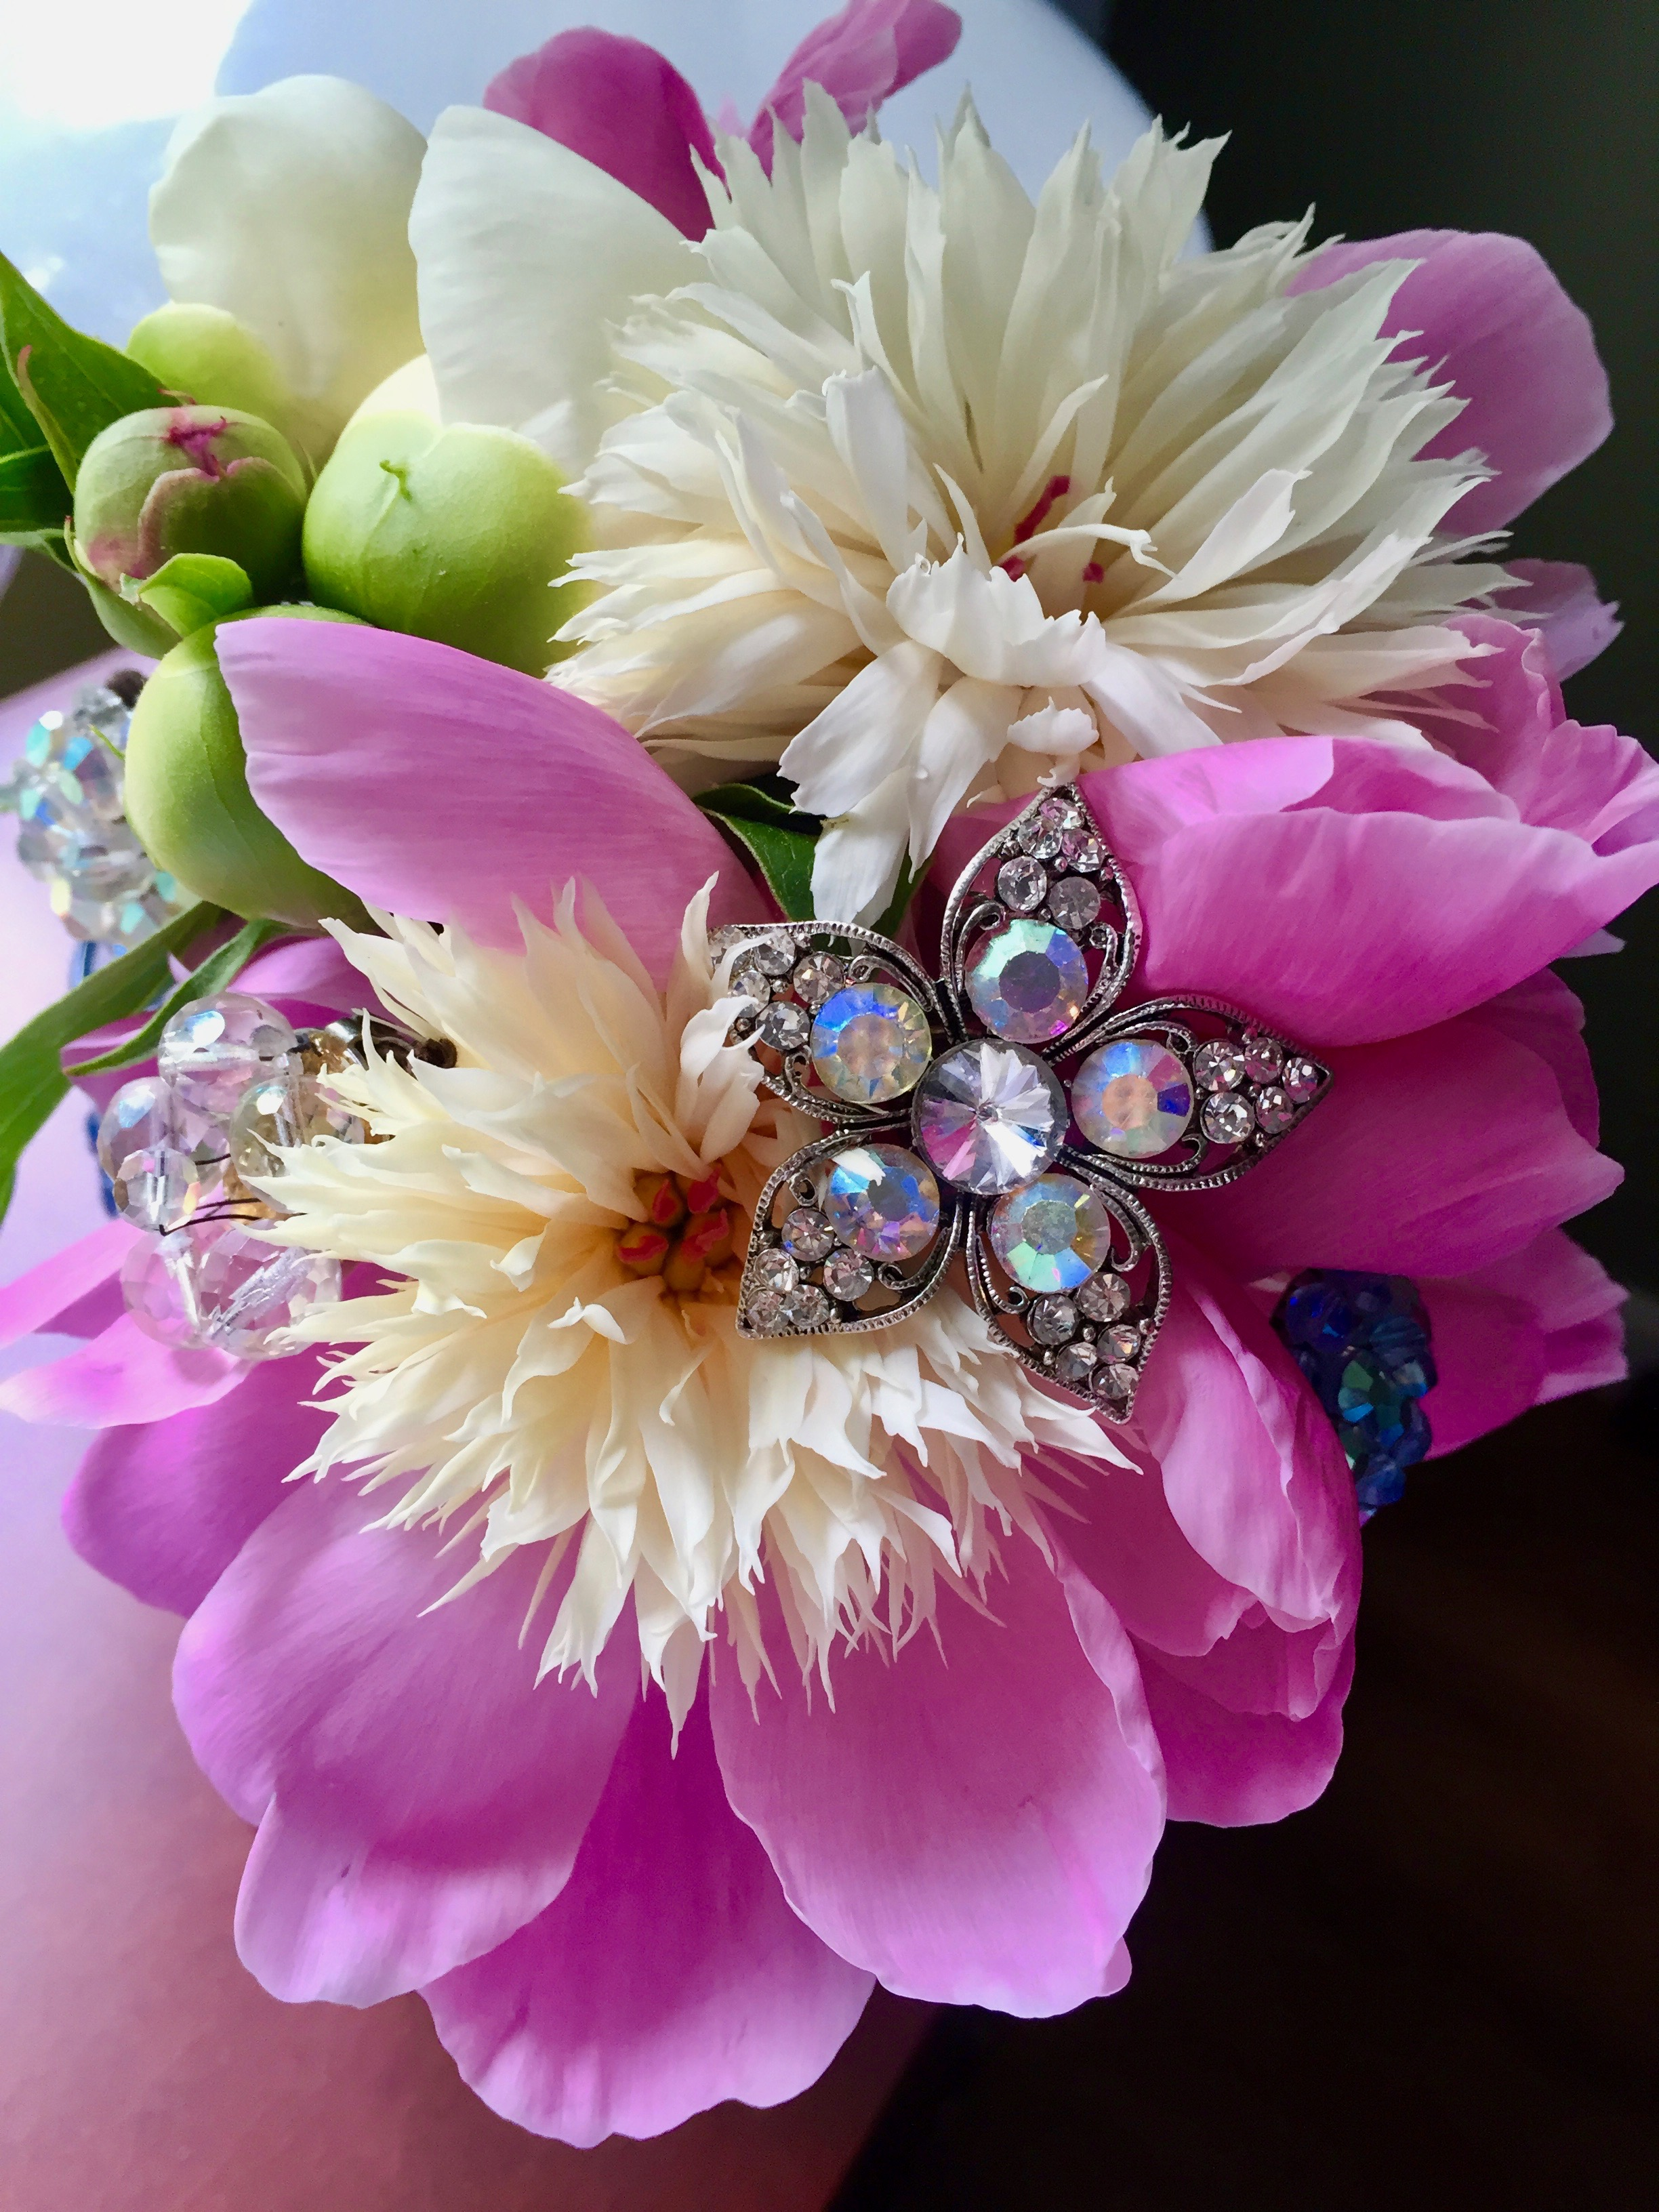 floral wedding bouquet with jewelry.jpg